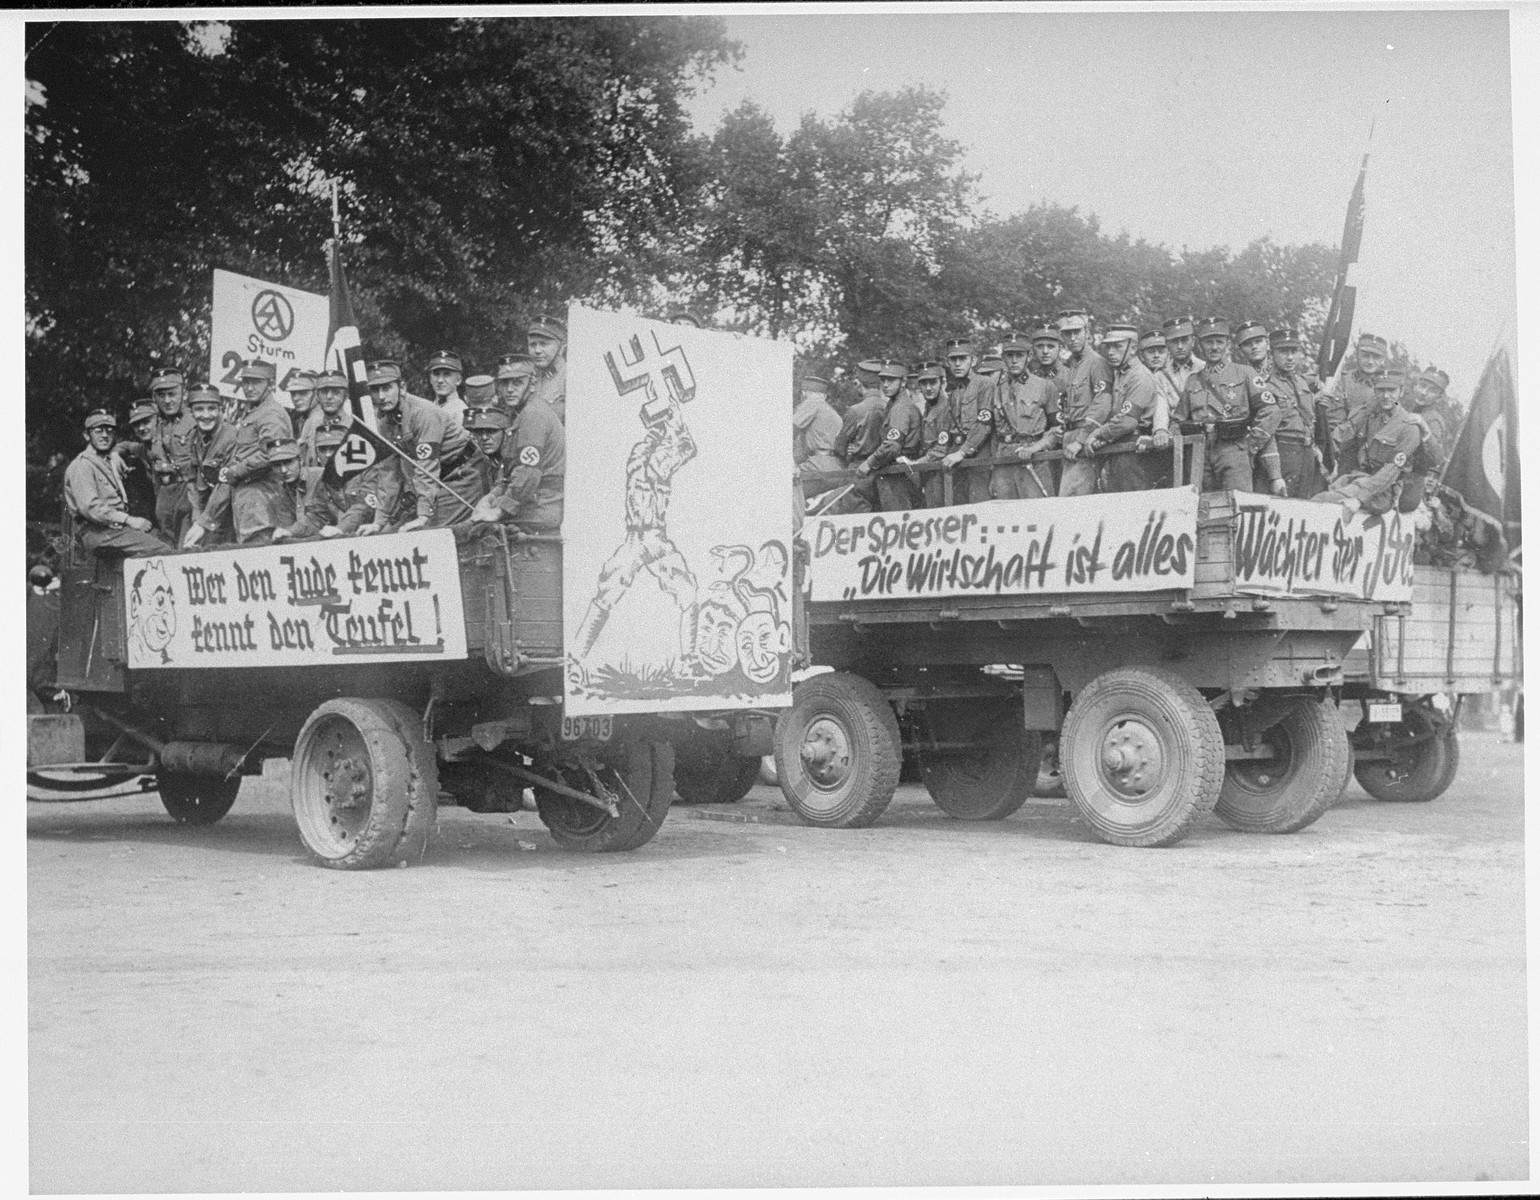 "Members of the SA drive through the streets of Recklingshausen, Germany on propaganda trucks bedecked with anti-Jewish banners.  The banners read: "" He who knows the Jew knows the Devil,""  ""The Bourgeois: 'the economy is everything.""  The poster depicts a man using a swastika to crush Jews with snakes coming out of their heads.  On the back is the official stamp of the SA and a handwritten note, ""At the beginning of the Propaganda parade on August 18, 1935."""